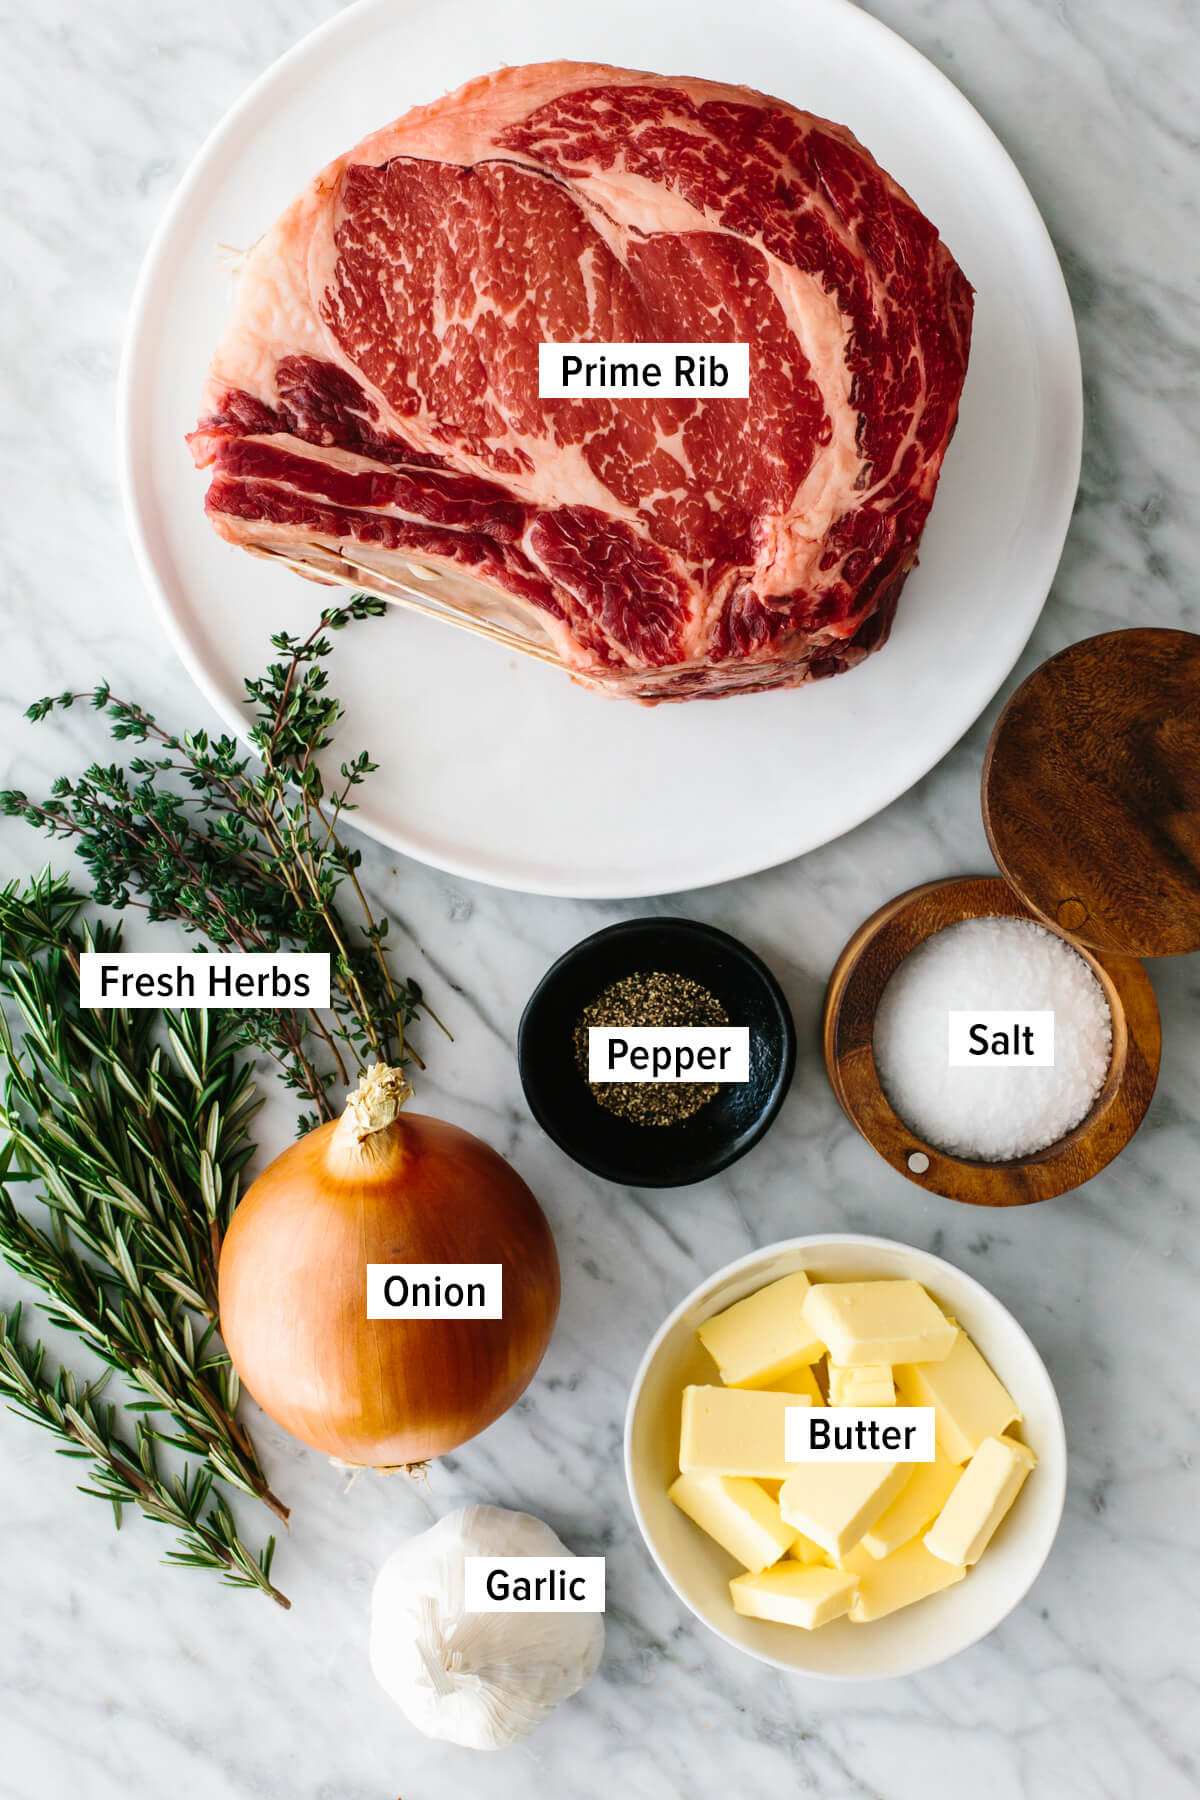 Ingredients to make prime rib on a counter.